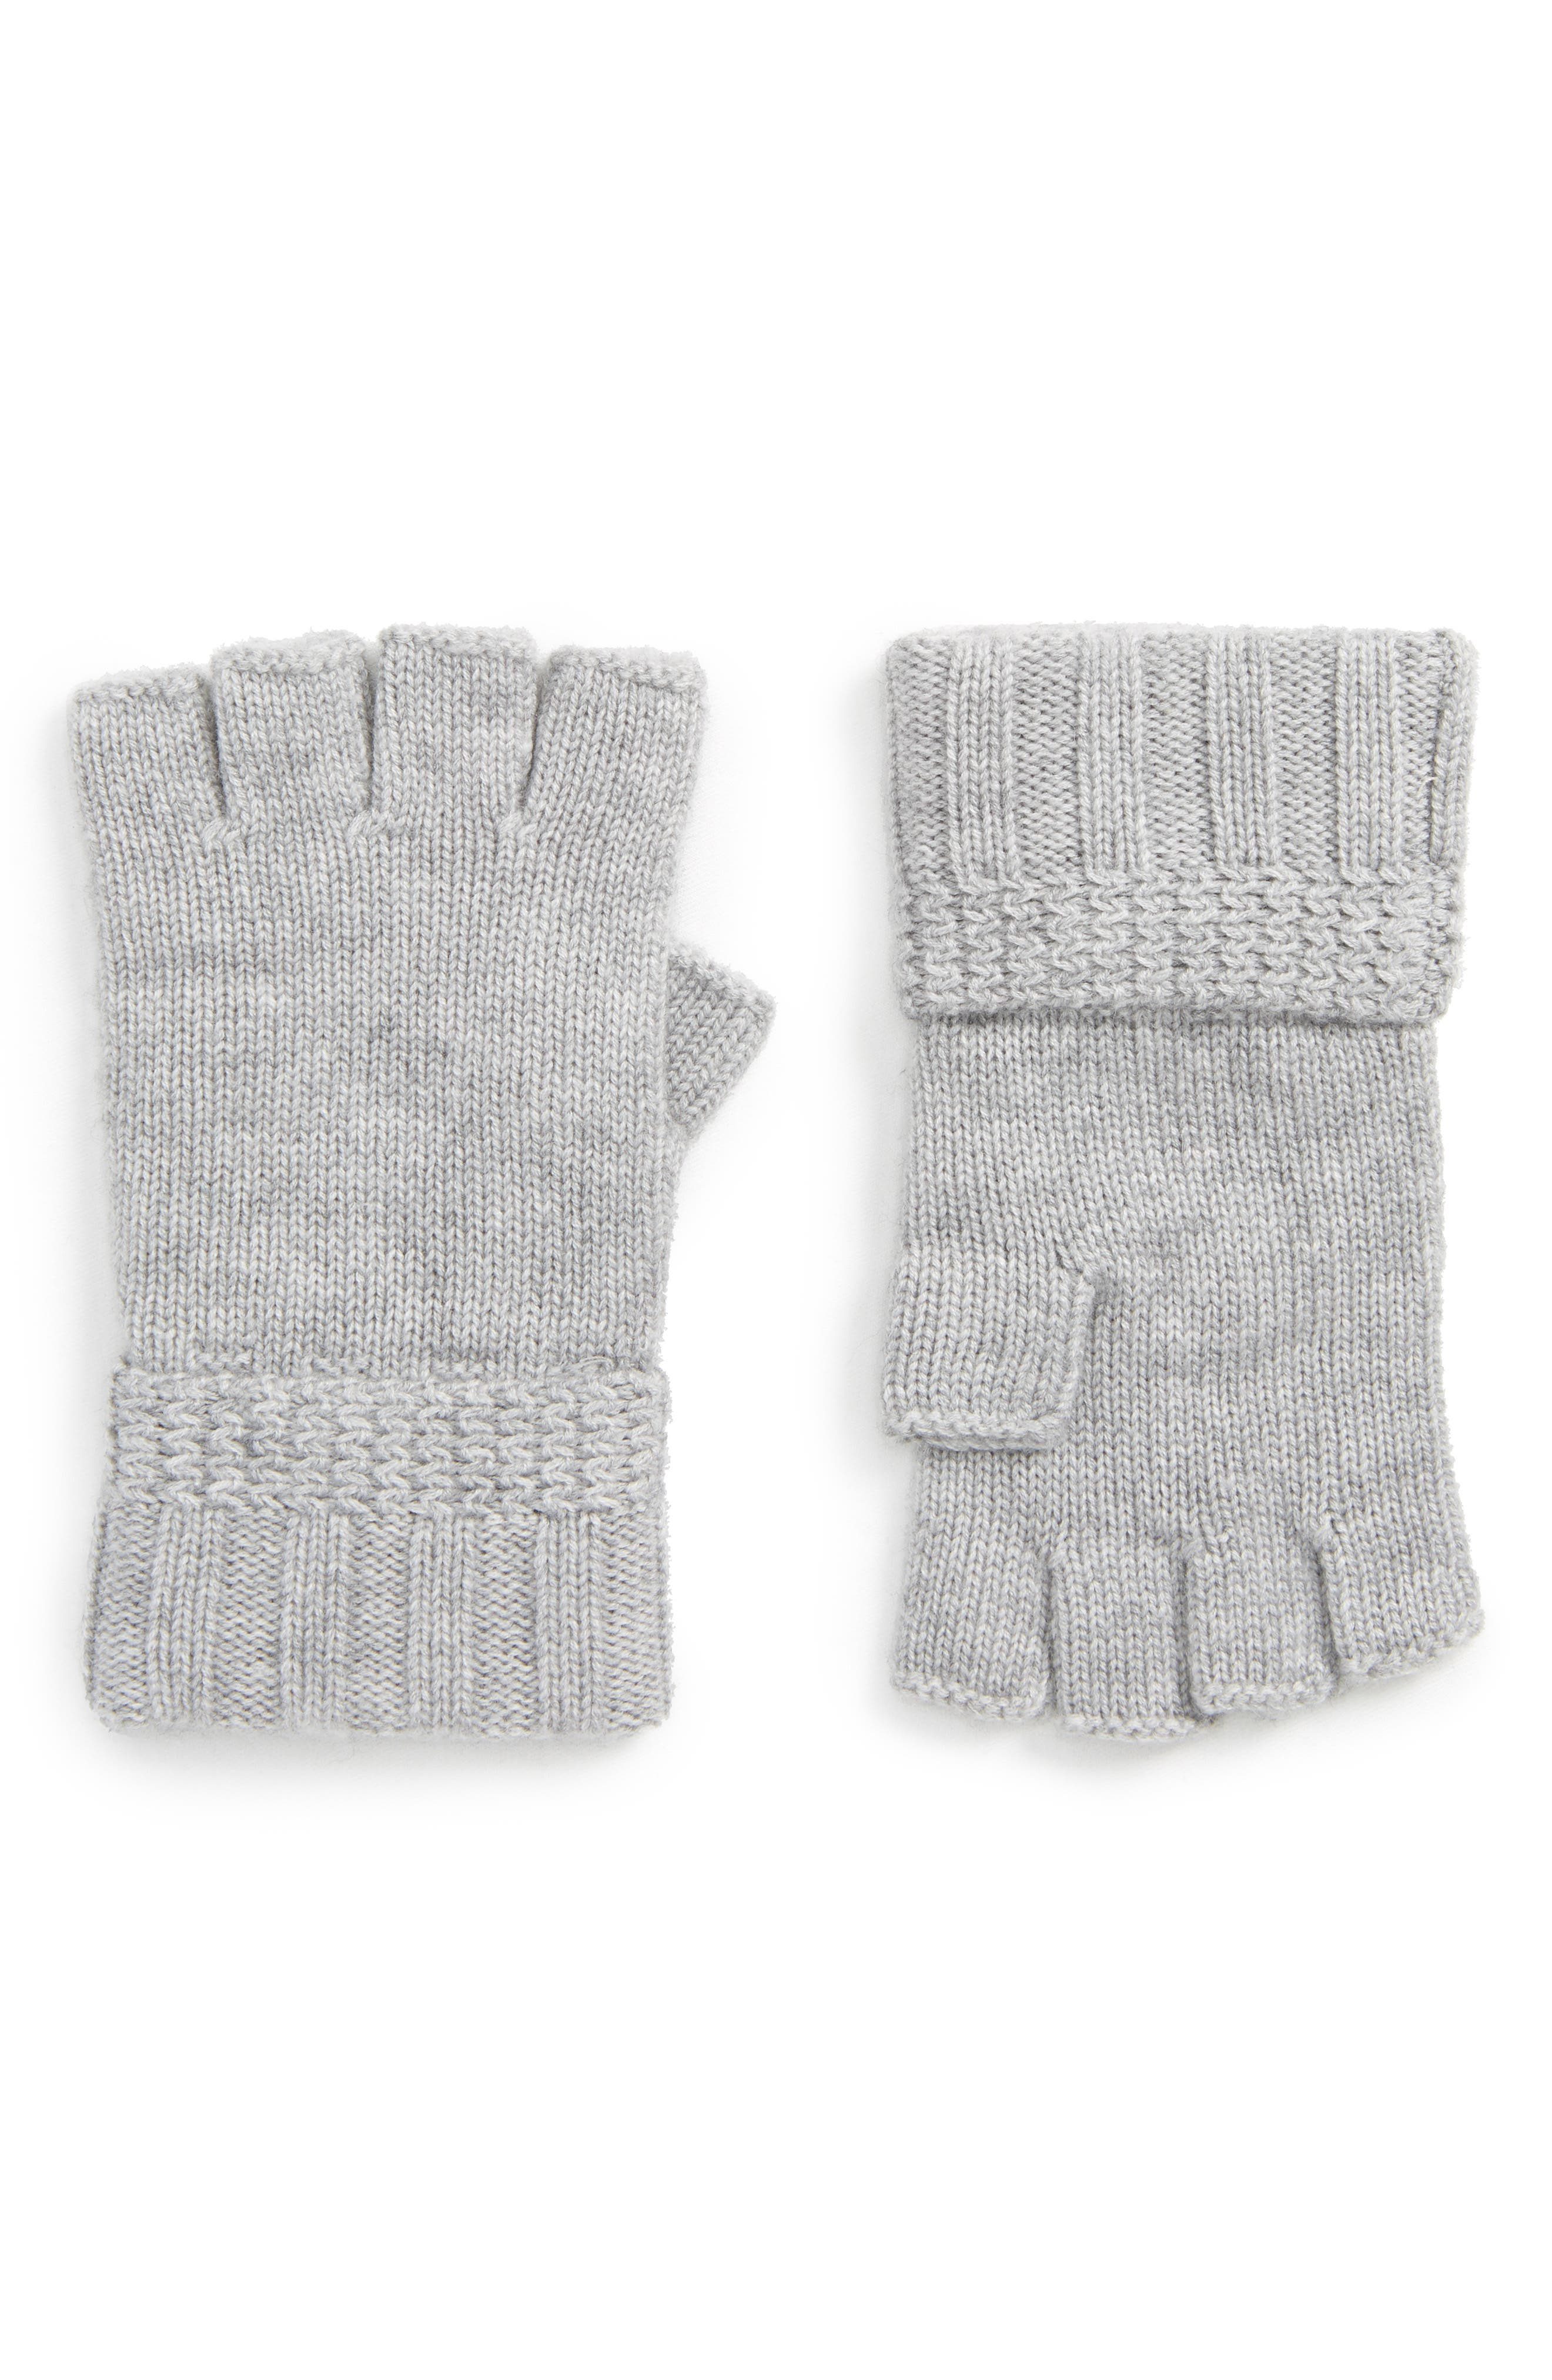 UGG<sup>®</sup> Texture Knit Fingerless Gloves,                             Main thumbnail 2, color,